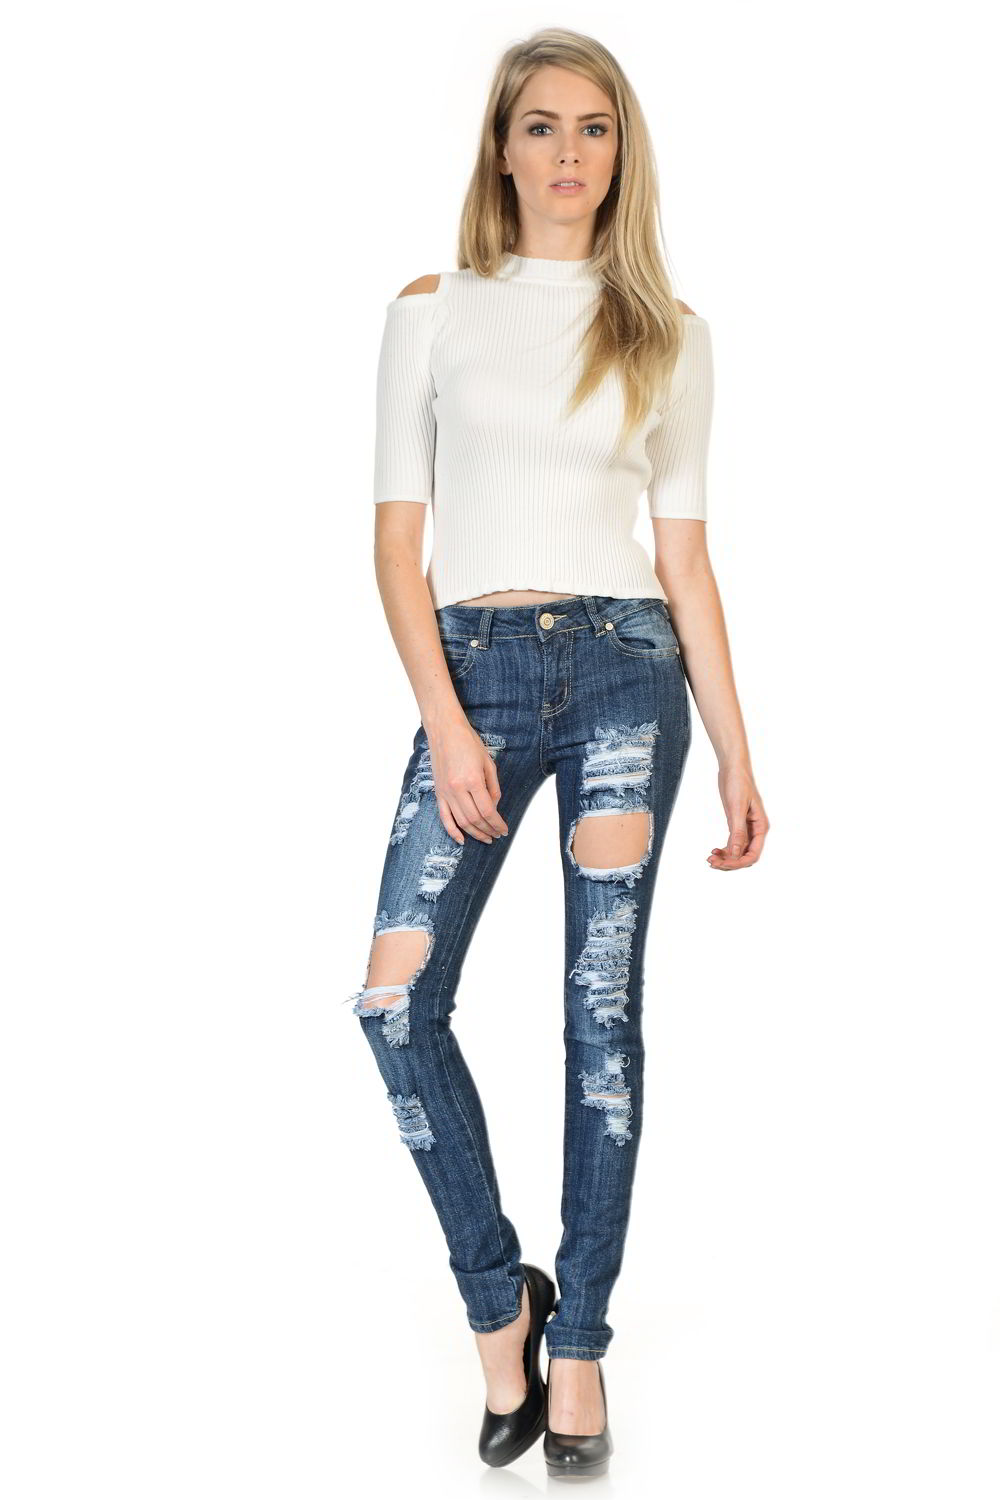 Sweet Look Premium Edition Women's Jeans - Push Up - Style WY5033A-R